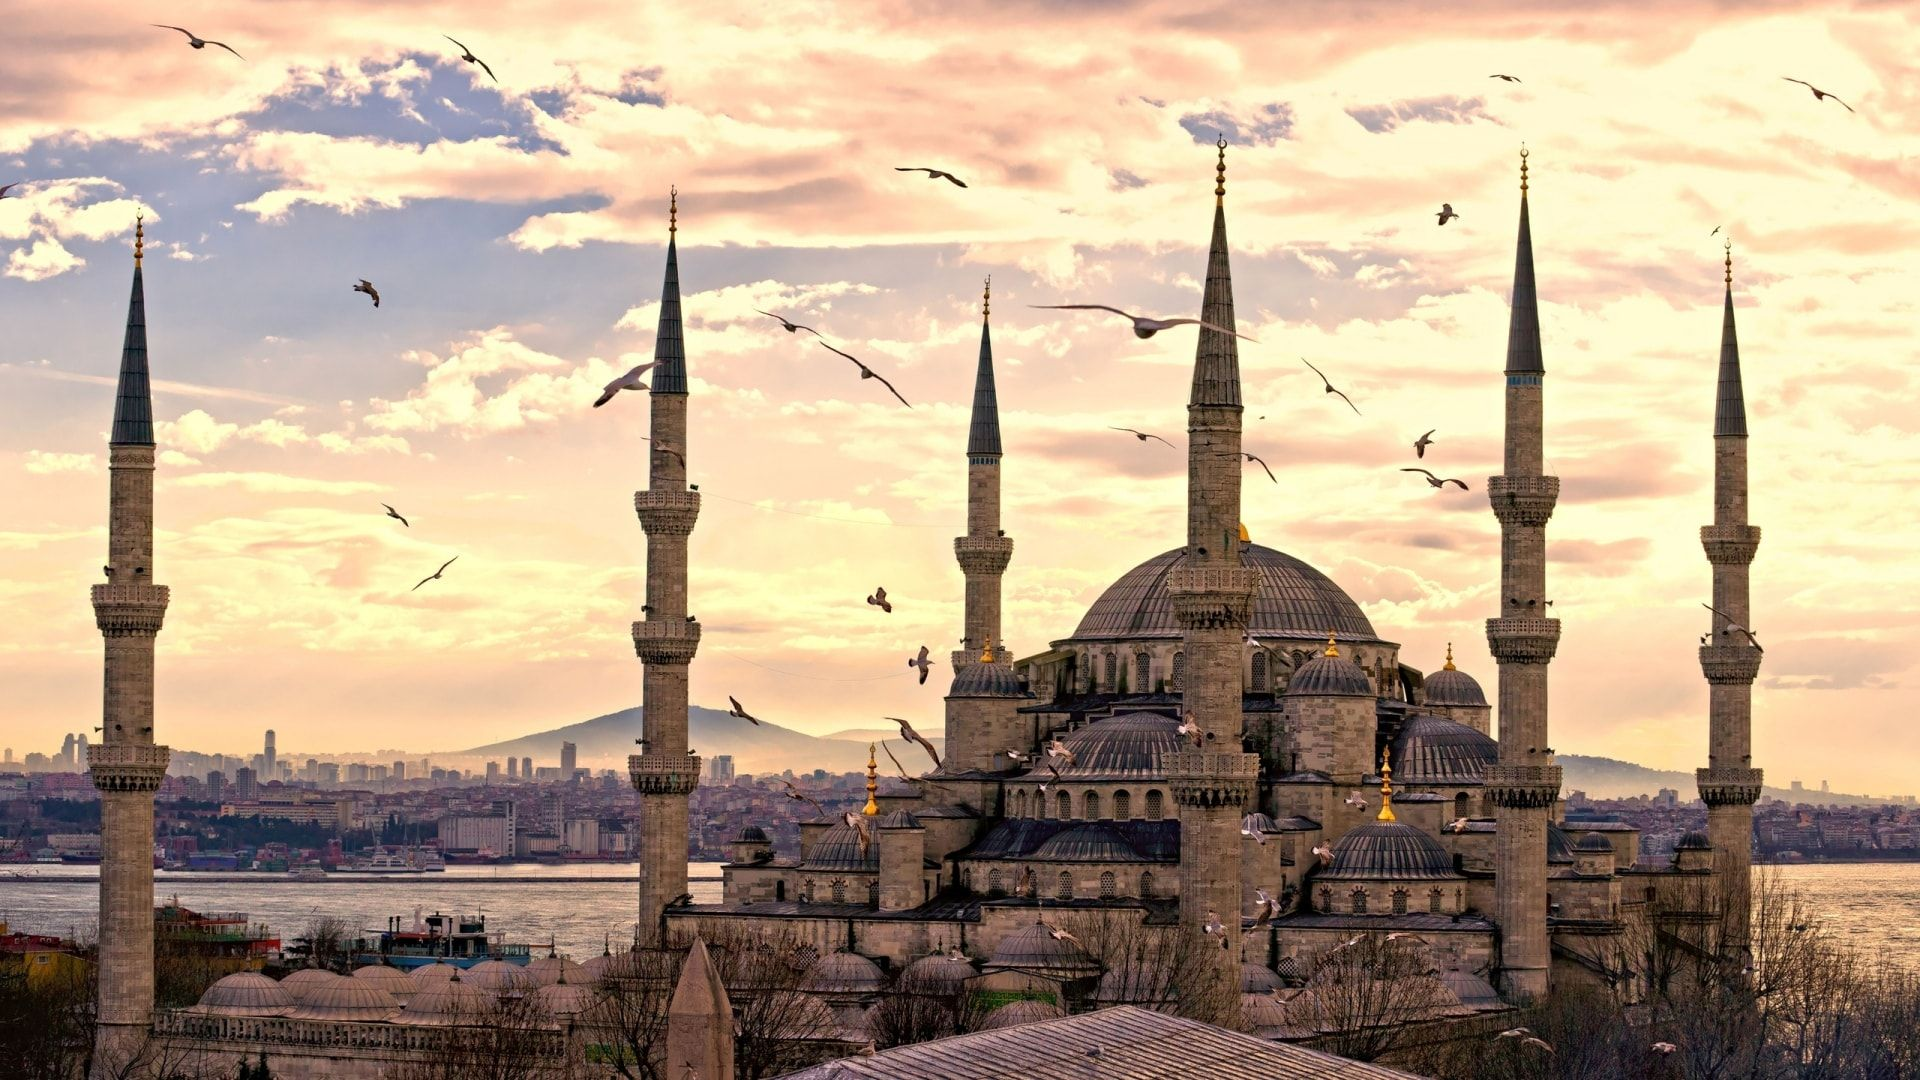 istanbul background images